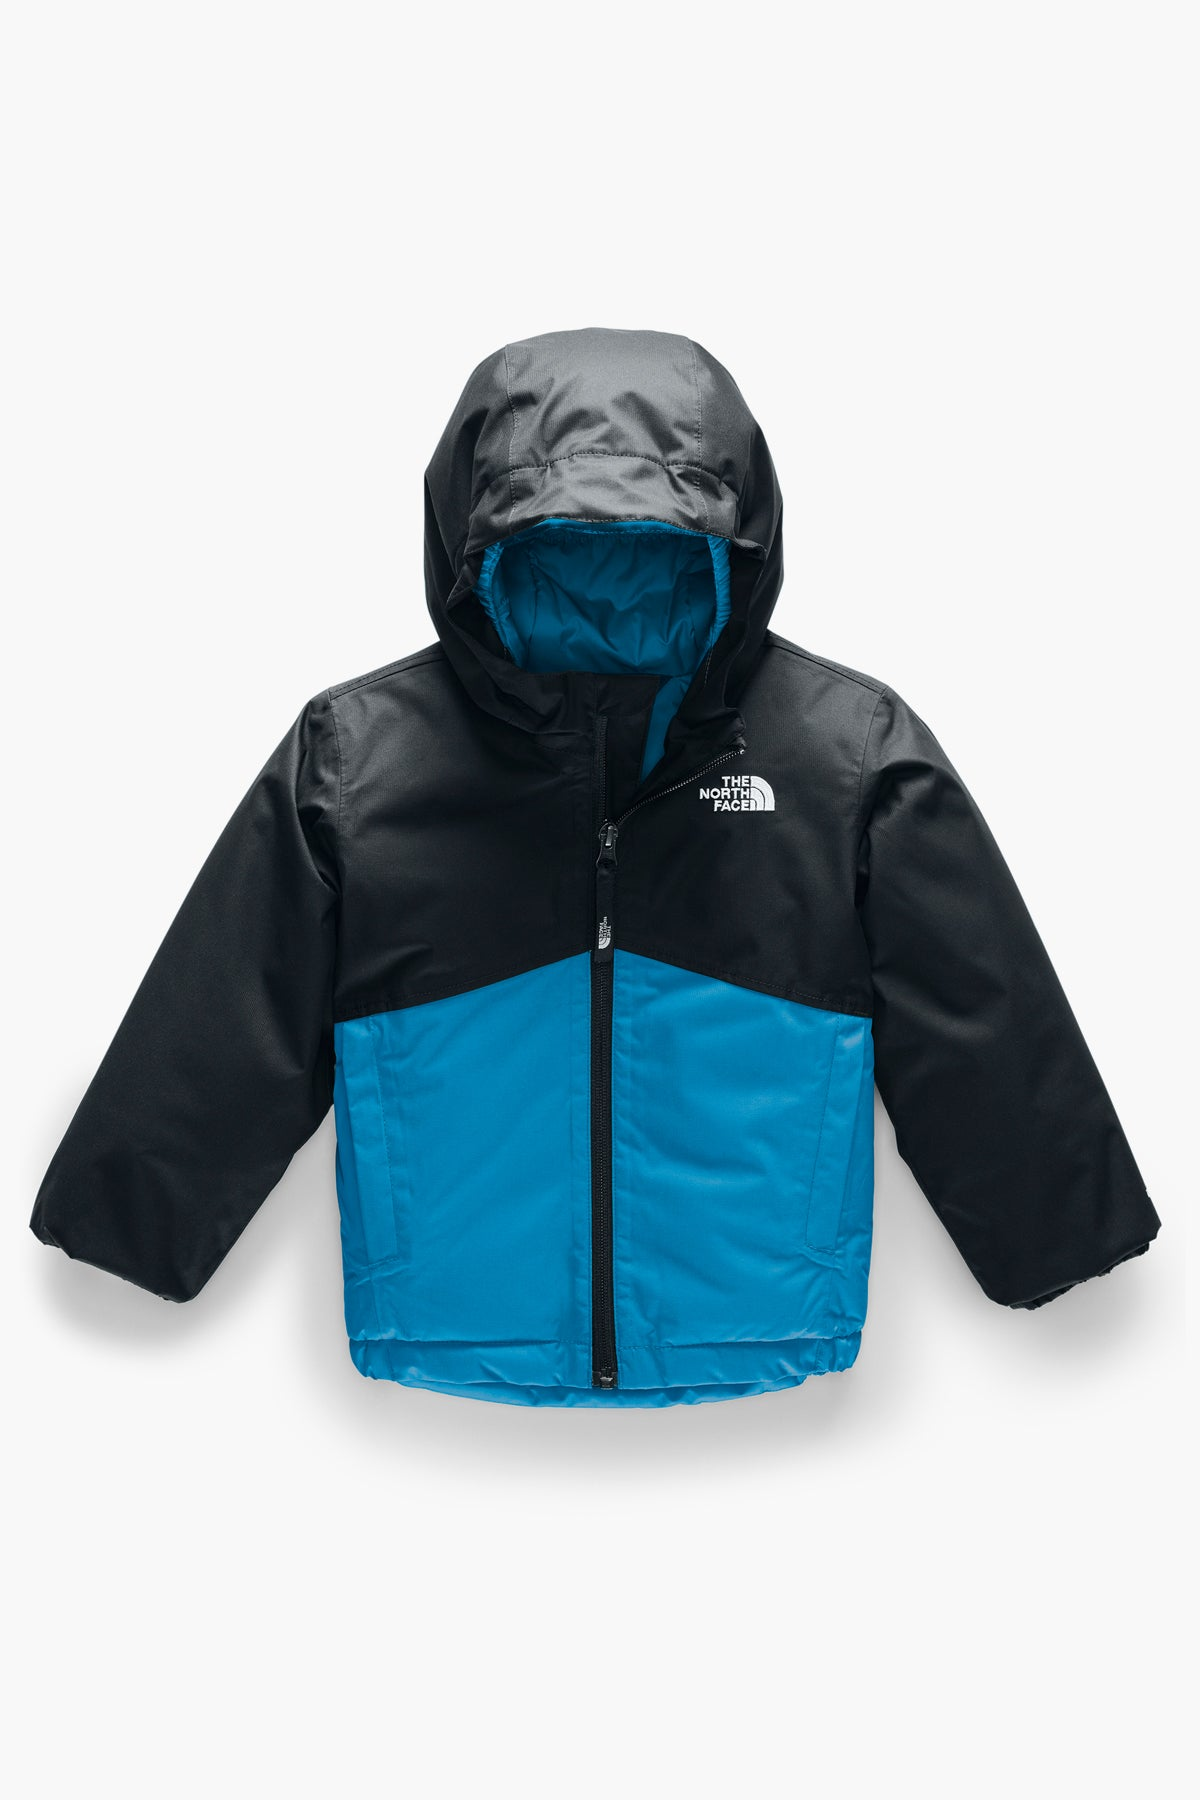 The North Face Snowquest Insulated 2-Piece Set - Acoustic Blue (Size 6 left)